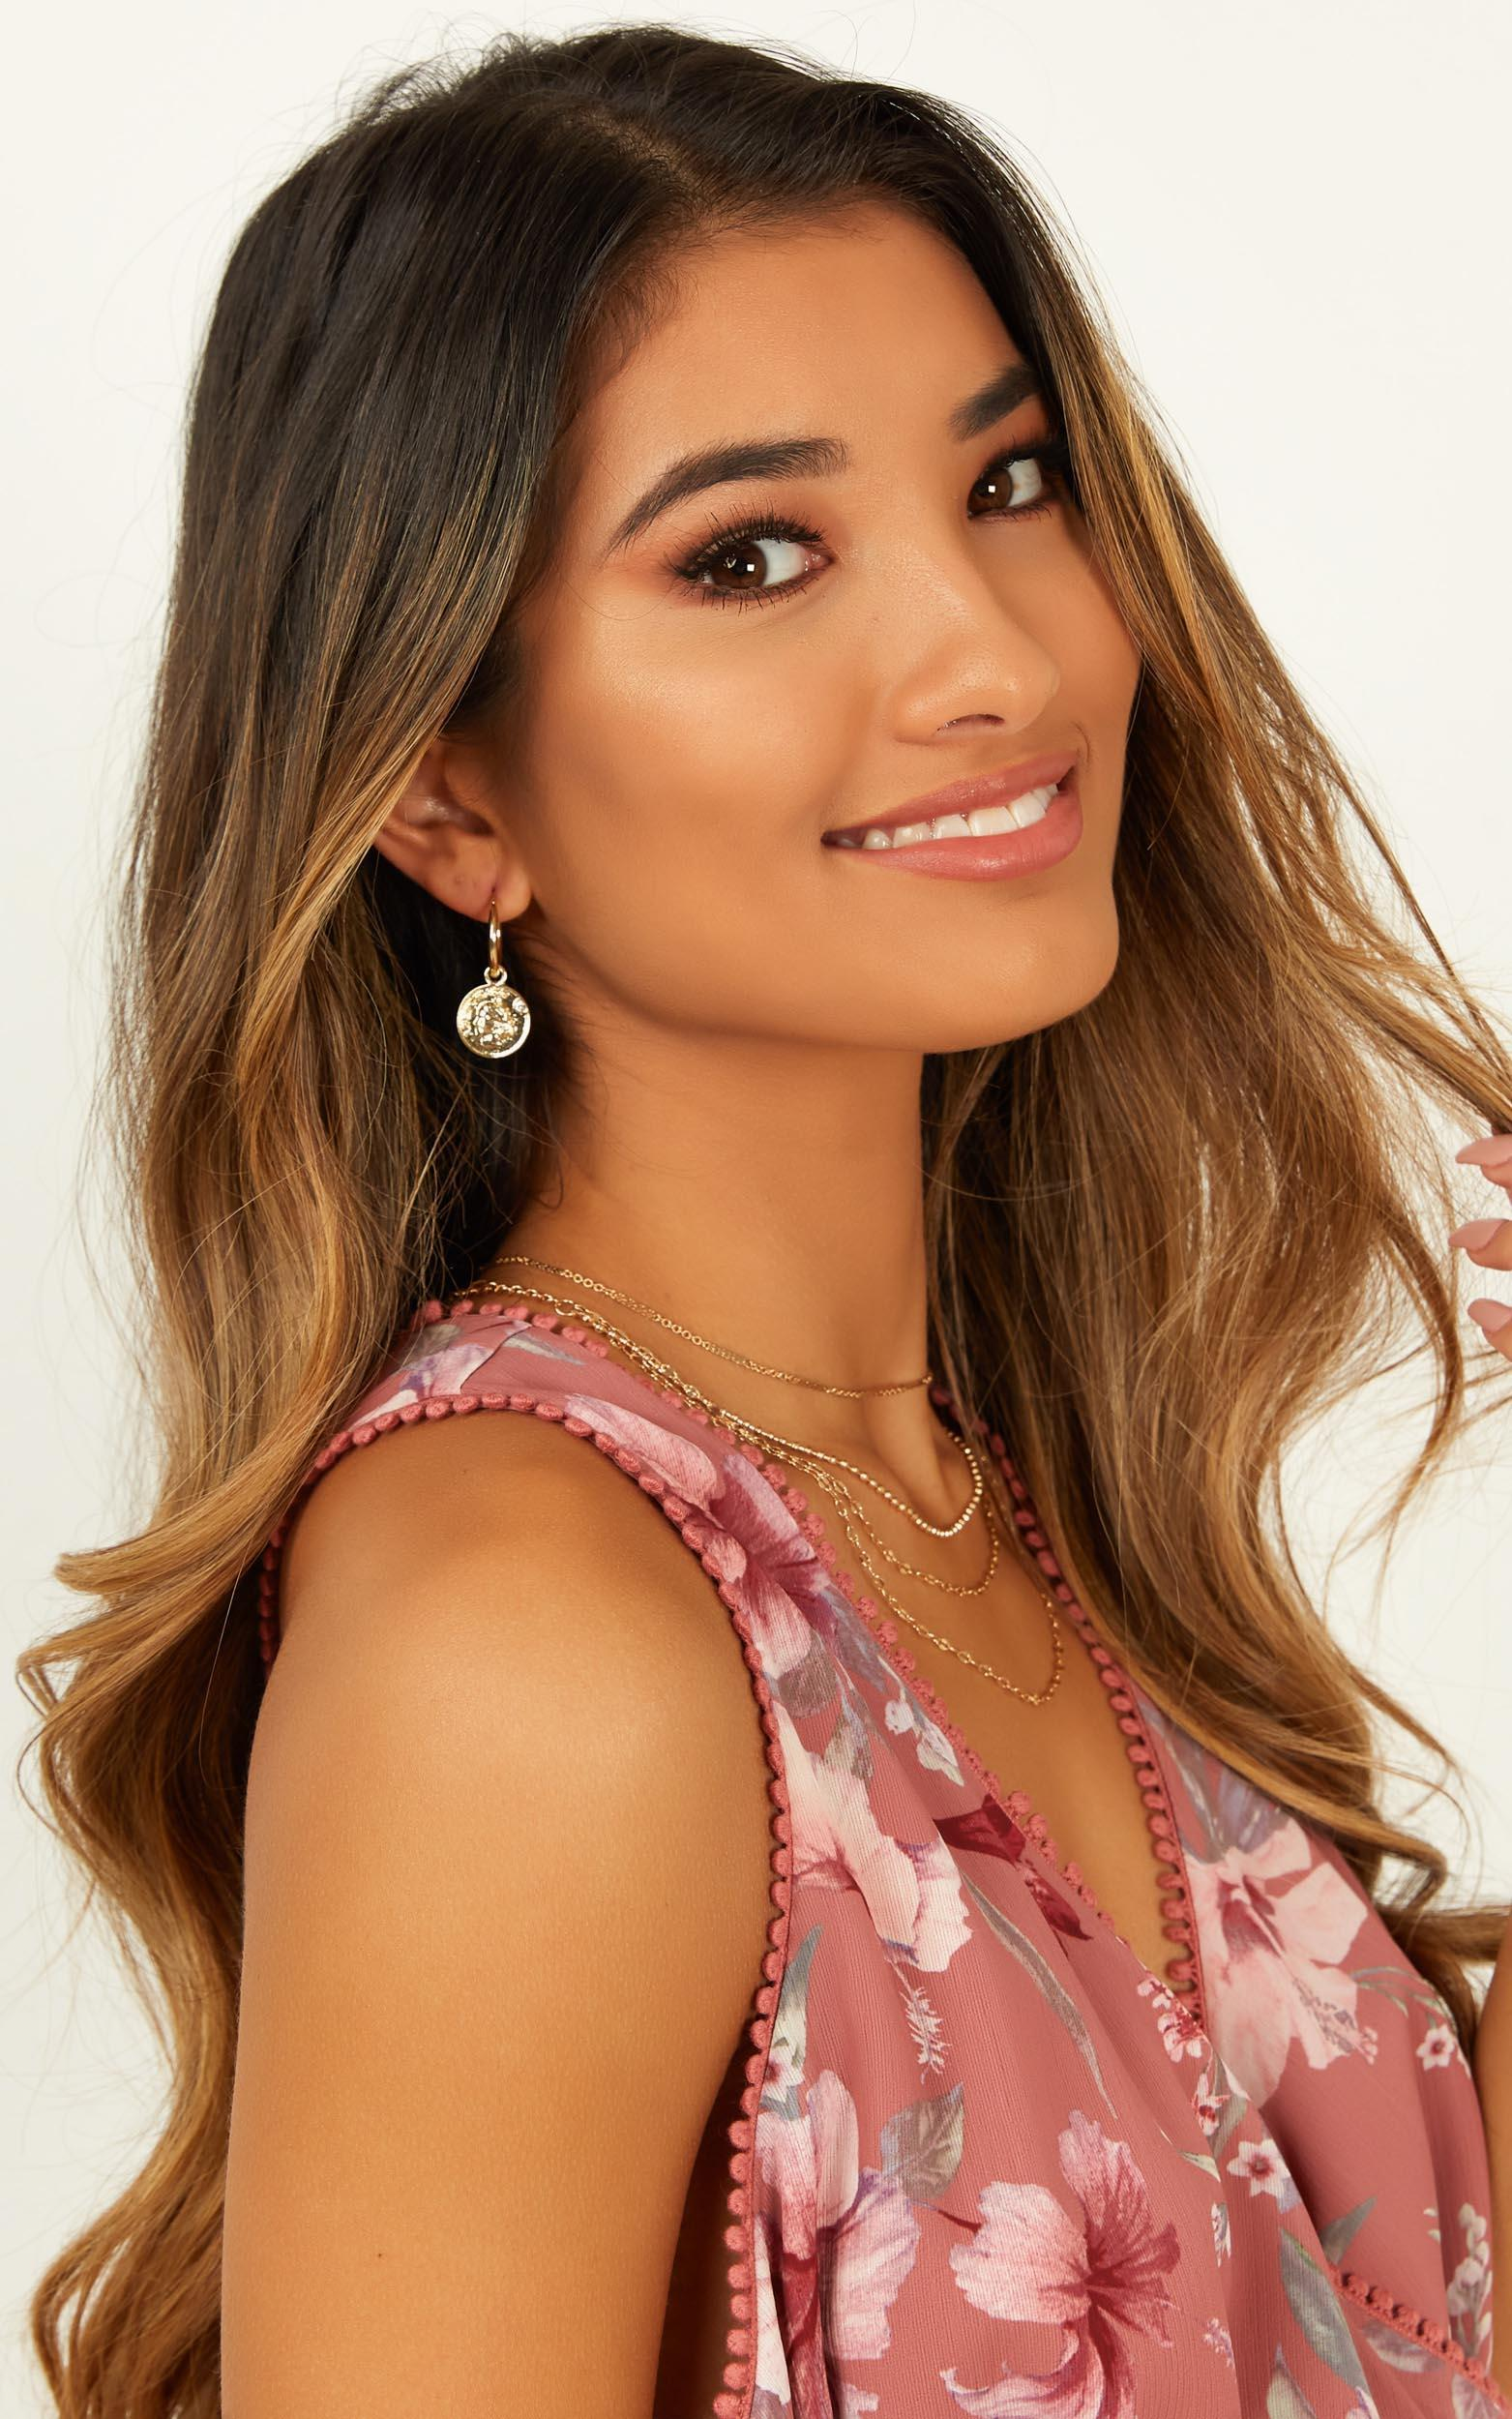 Have It My Way Earrings In Gold, , hi-res image number null